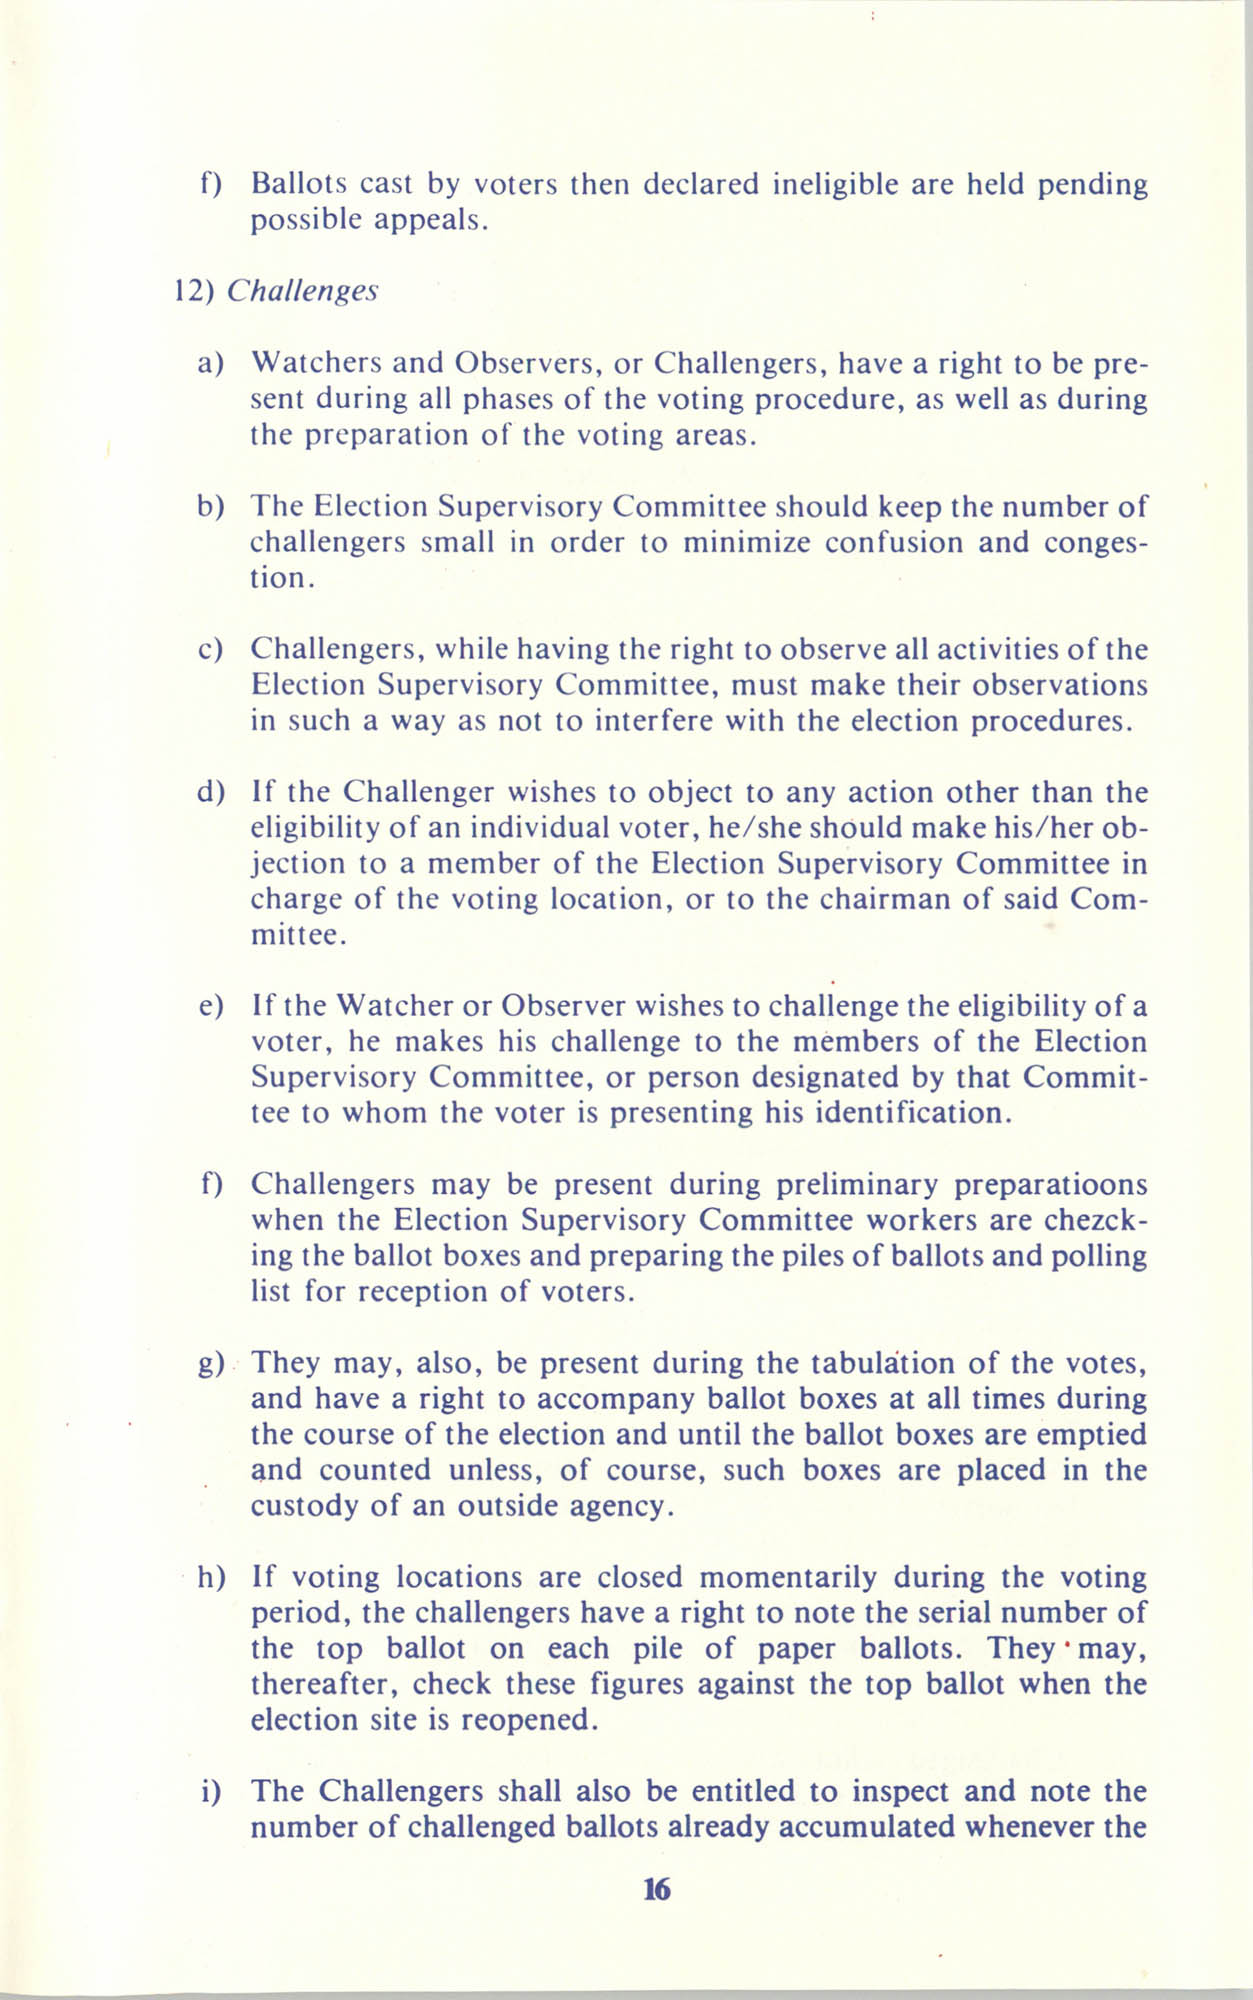 Manual on Branch Election Procedure, Page 16